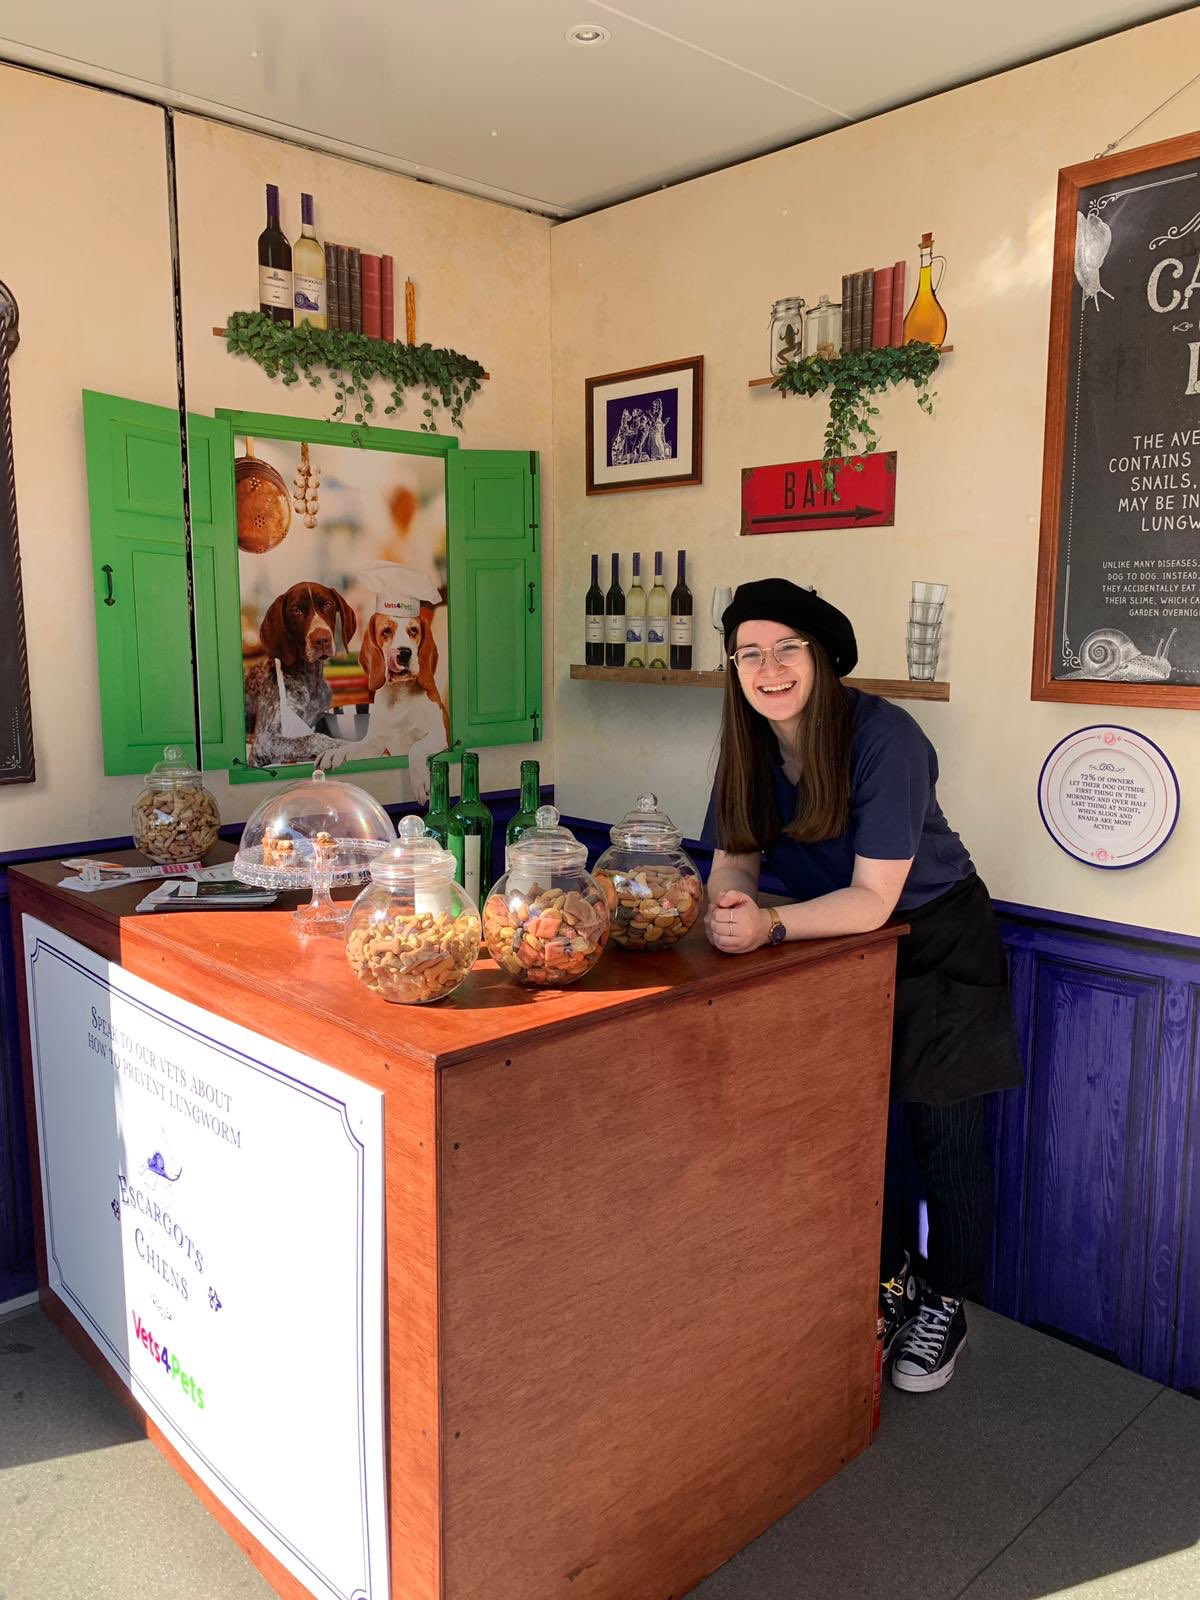 Vets4Pets serving treats at pop-up dog café in Victorian Park London